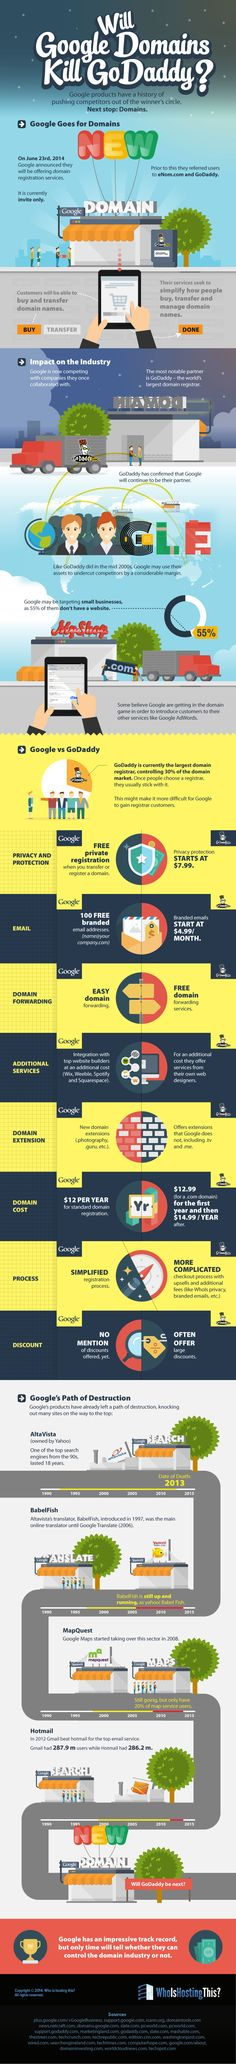 Will Google Domains Kill GoDaddy? #infographic #Domains #Google